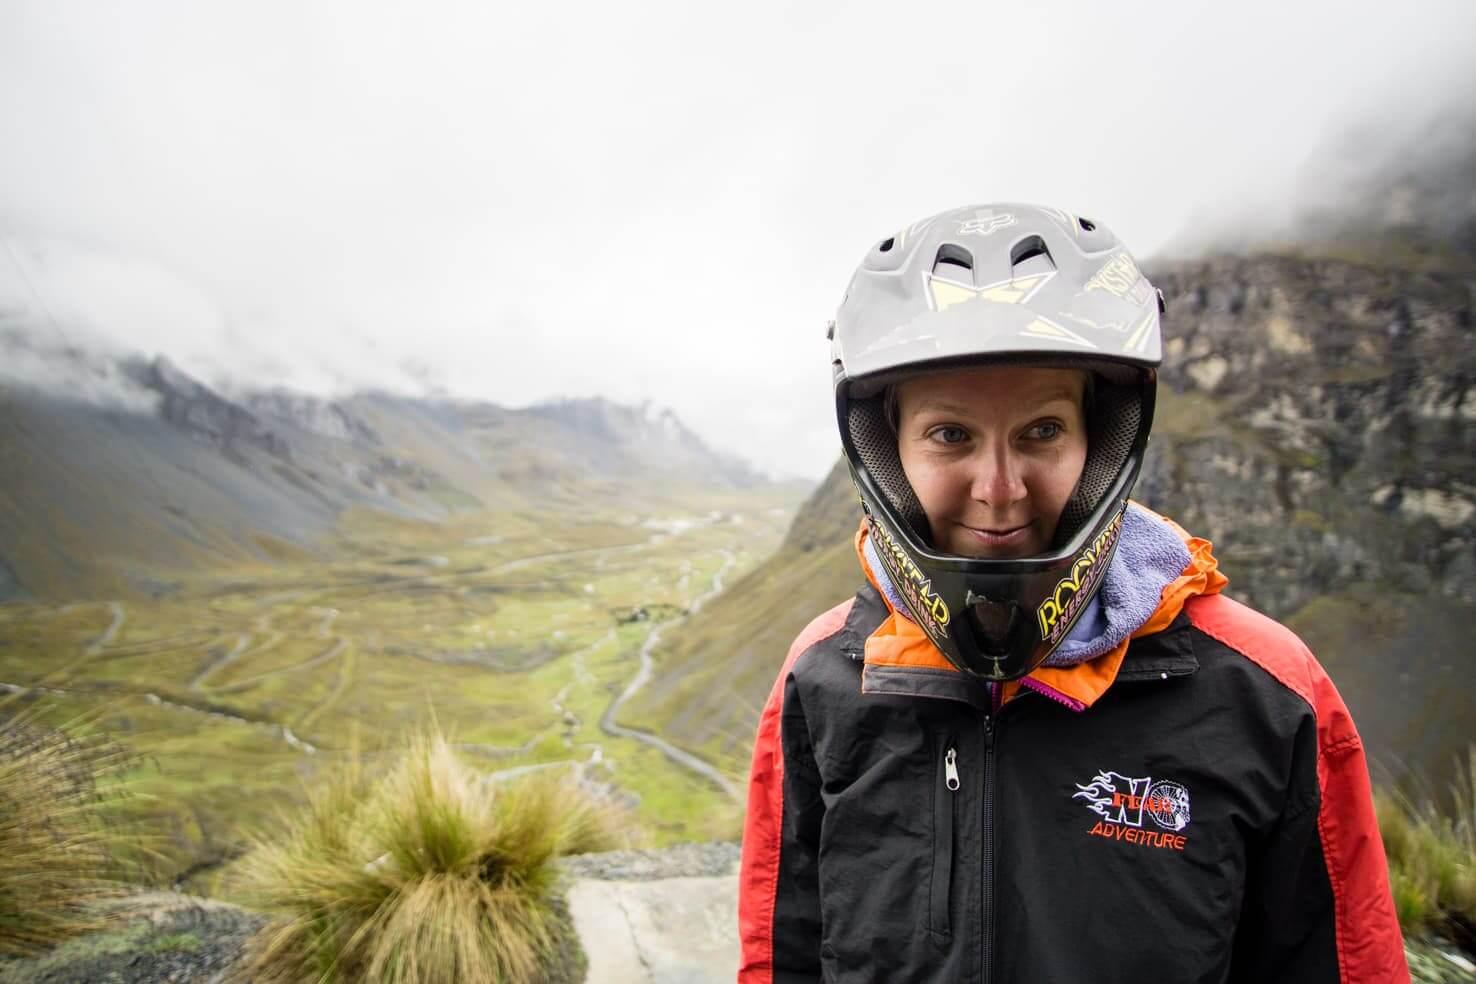 Biking Death Road, Bolivia - tourist attraction or the real deal